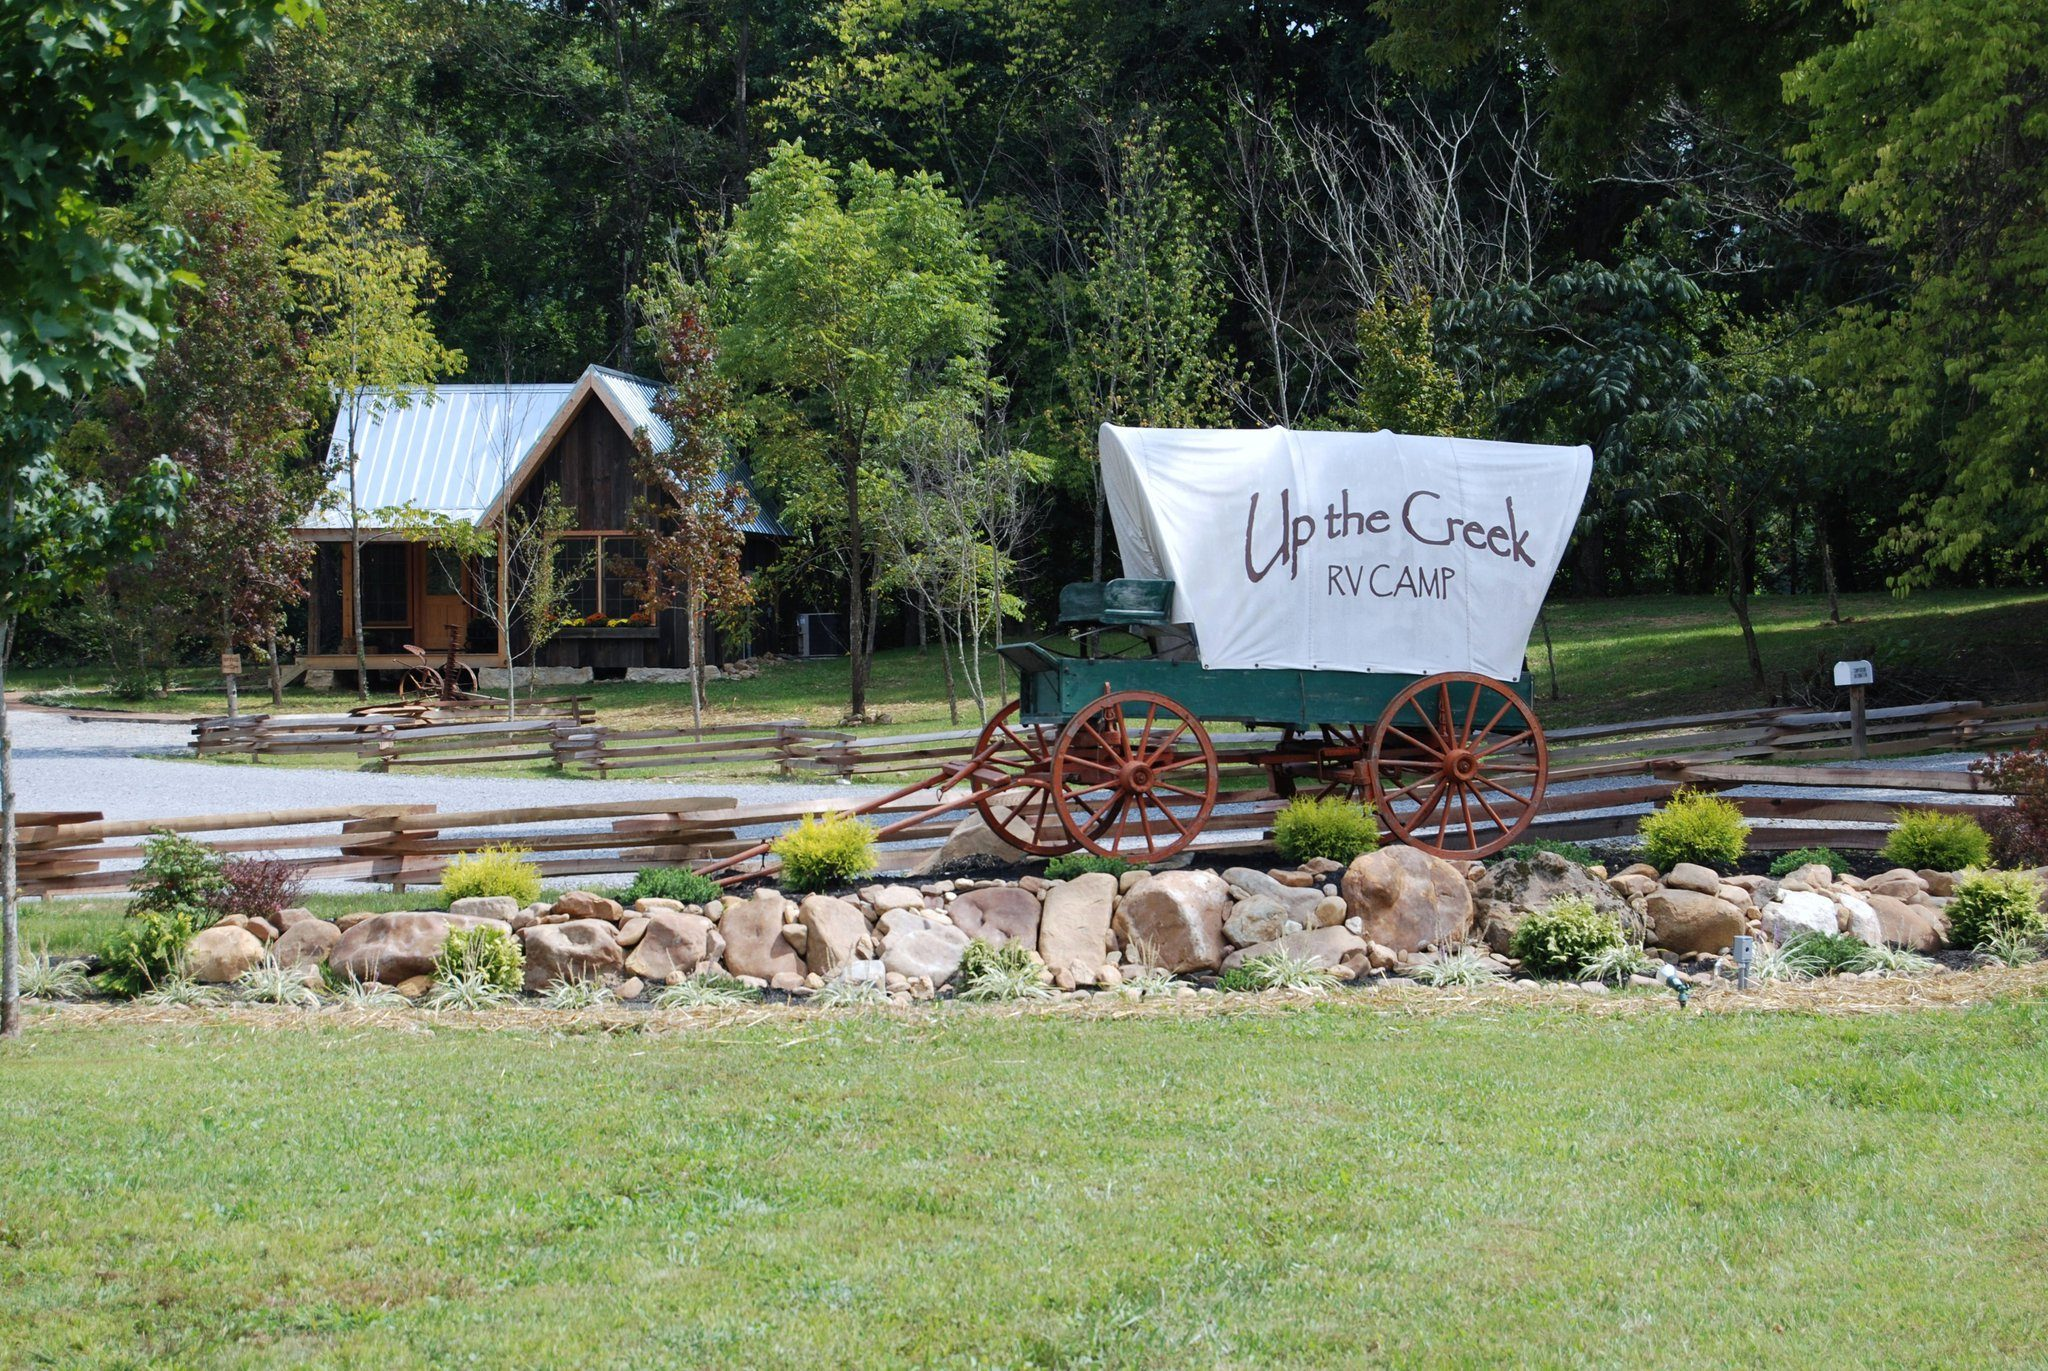 RV Camping - RV Campgrounds | Up The Creek RV Camp